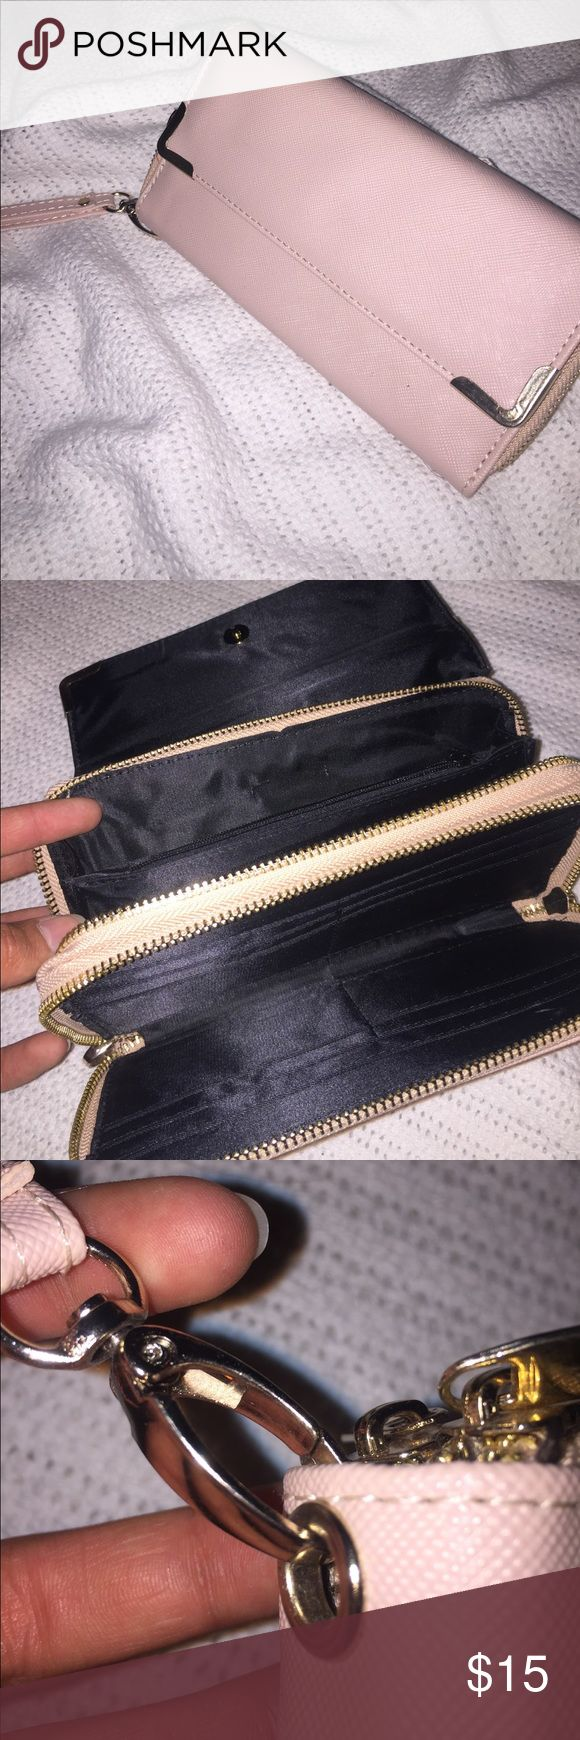 Pink clutch bag Only has been used once and is in really good condition. Nothing wrong with it just never really use it. Bag has two compartments that do close with zippers. Offers welcome!(: Bags Clutches & Wristlets